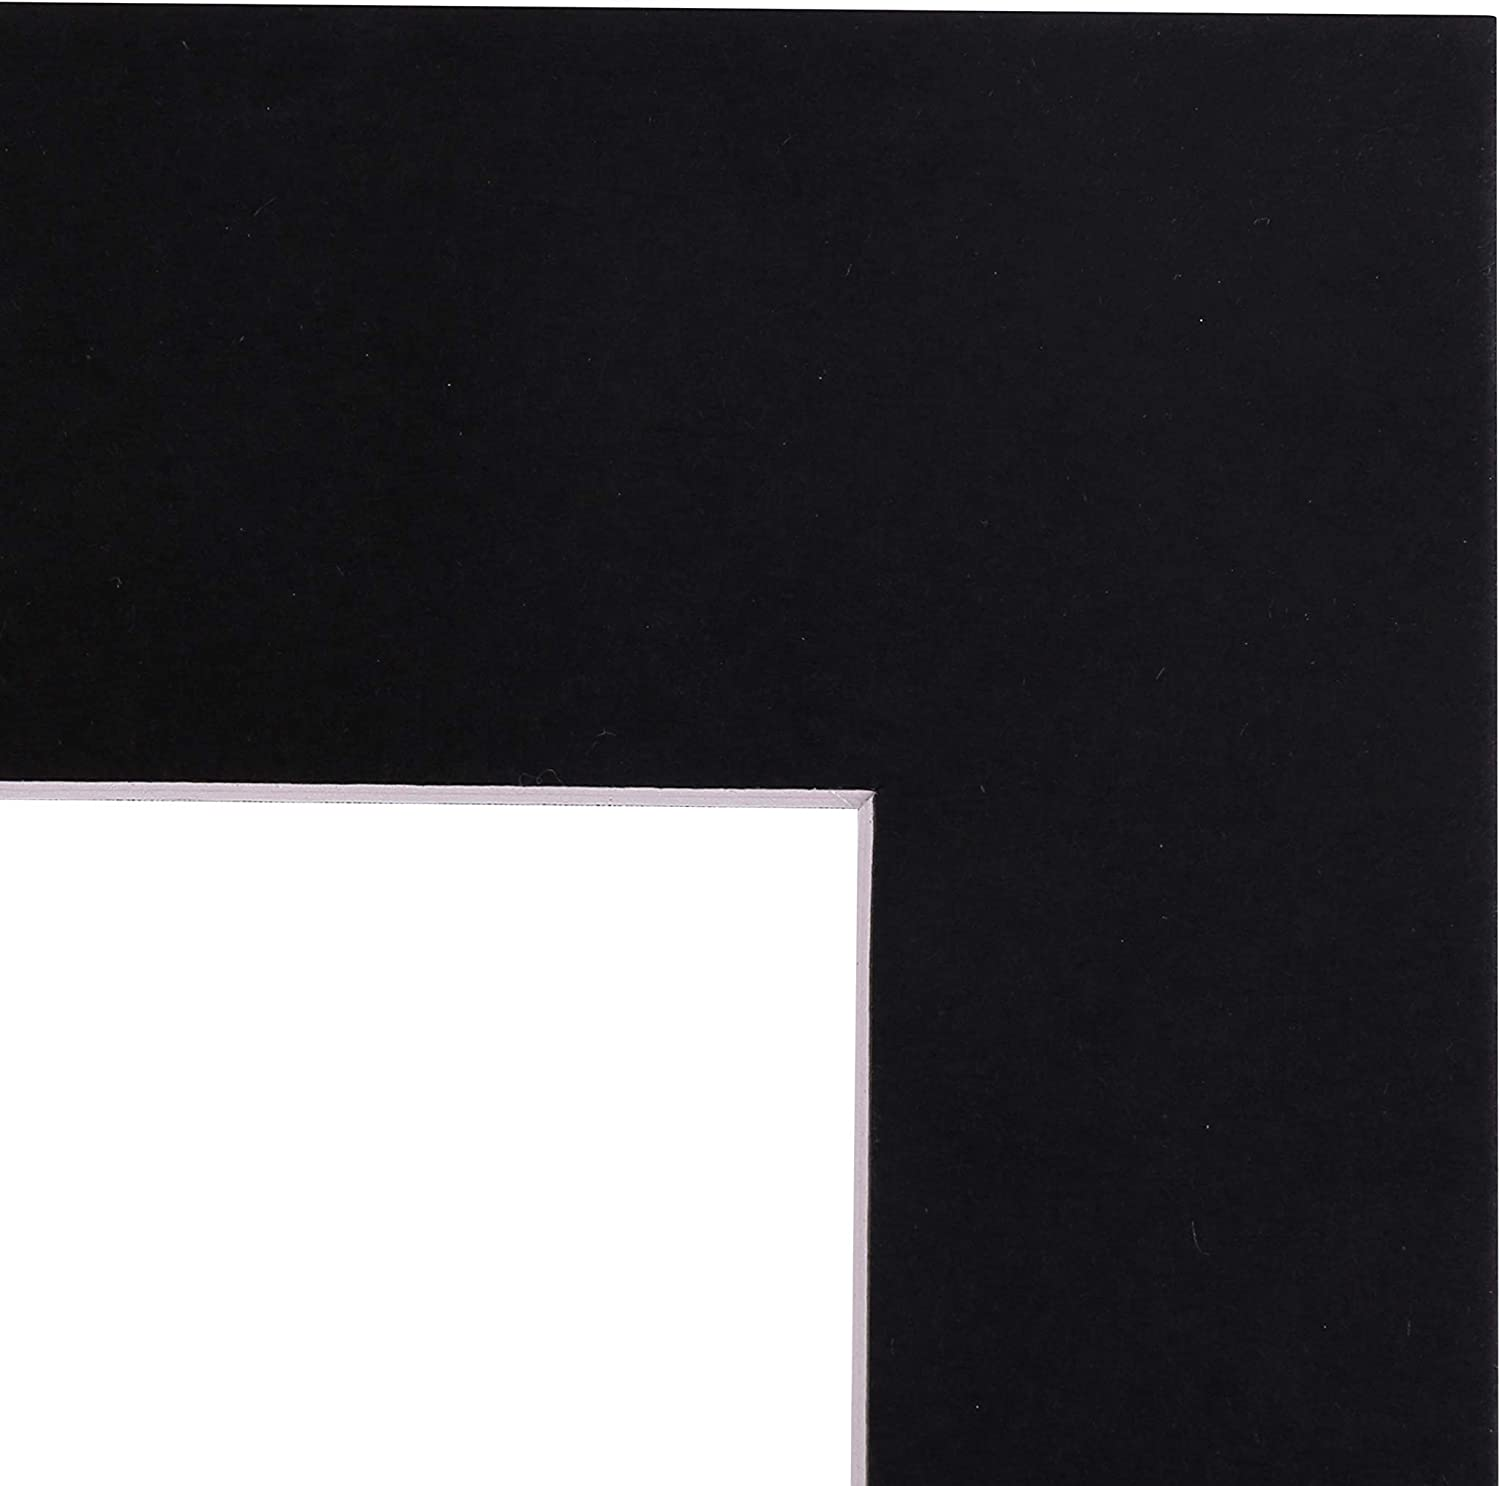 Art Emotion Brand of Pack of 20 Complete Black Mats Board Set Including Beveled Photo mats with White core /§ 20 pcs Size 5x7 Acid-Free re-Seal Crystal Bags Black Backing Boards